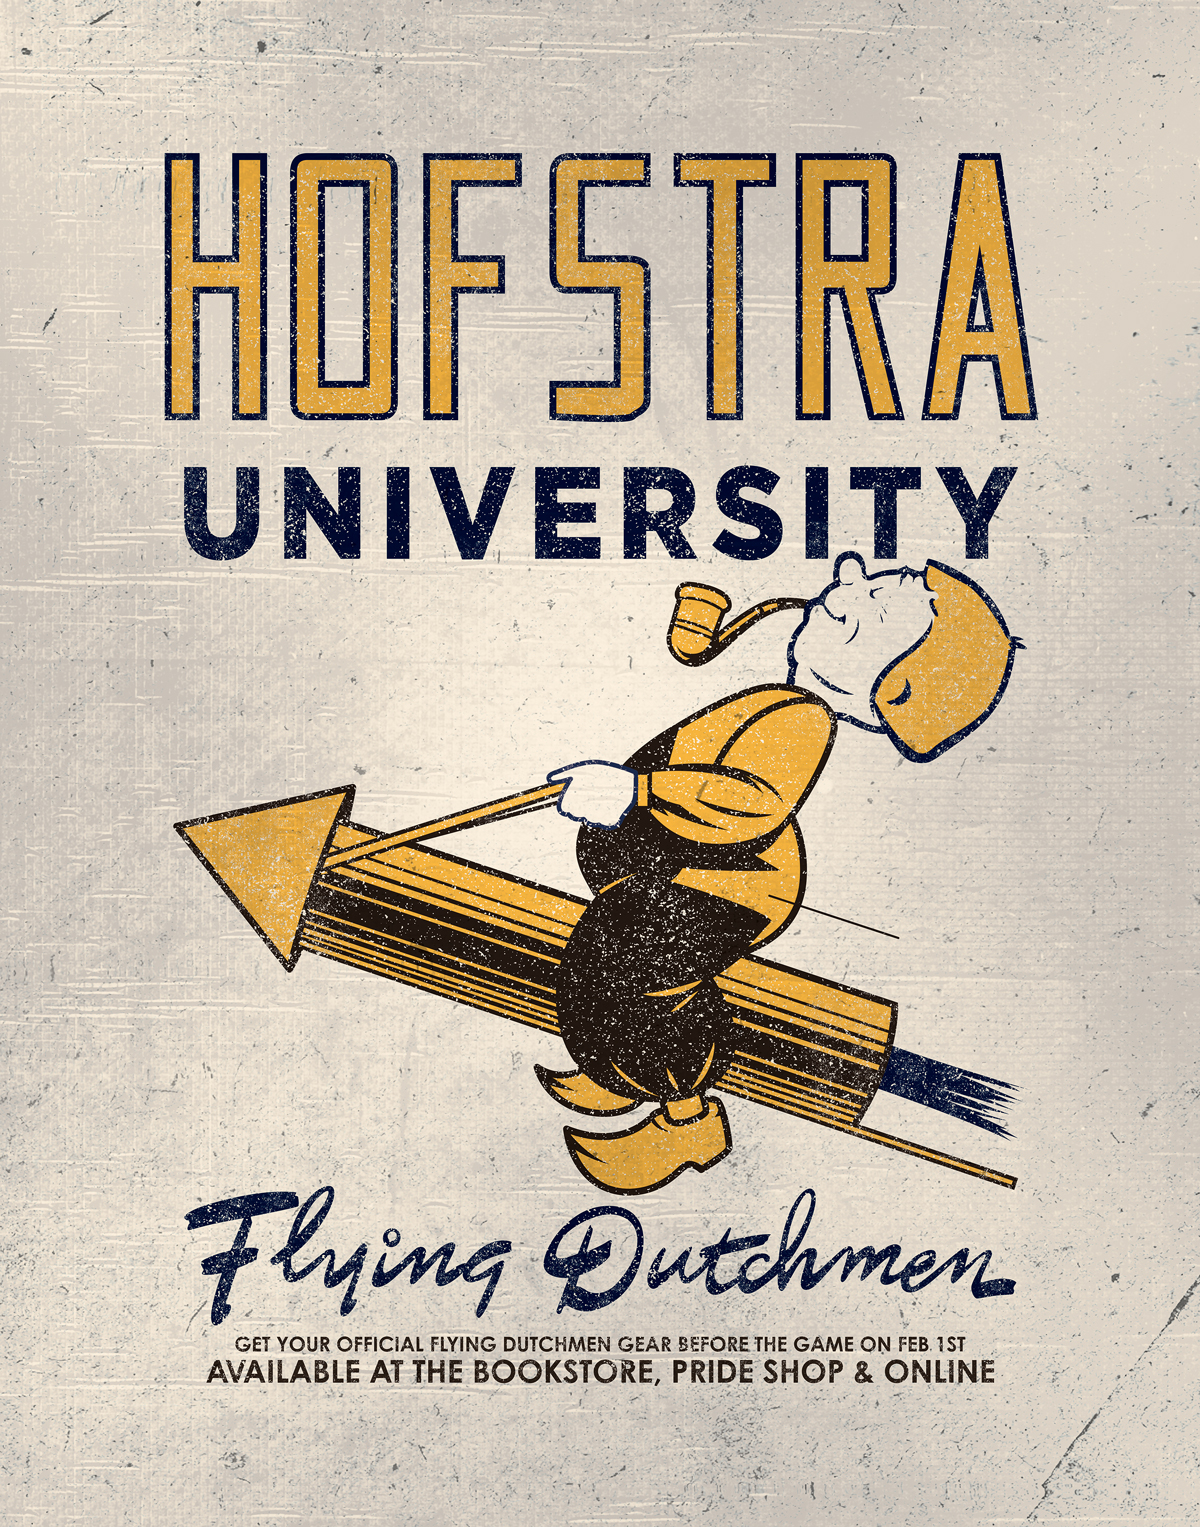 Hofstra - Flying Dutchmen Signage